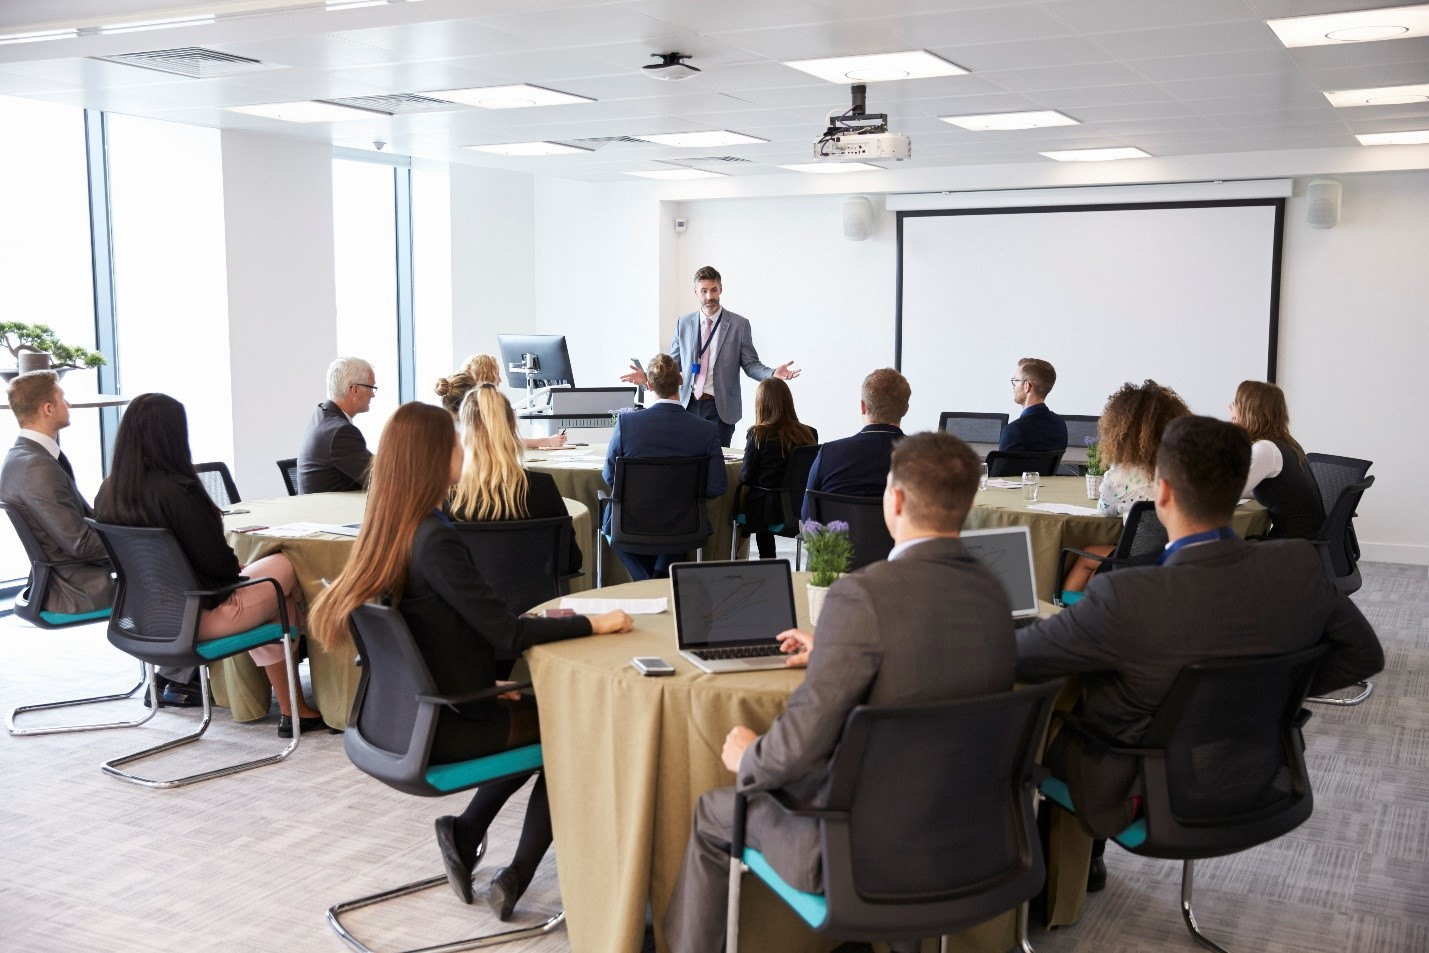 Corporate Sales Training Plays Very Important Role In The Goodwill Of Business